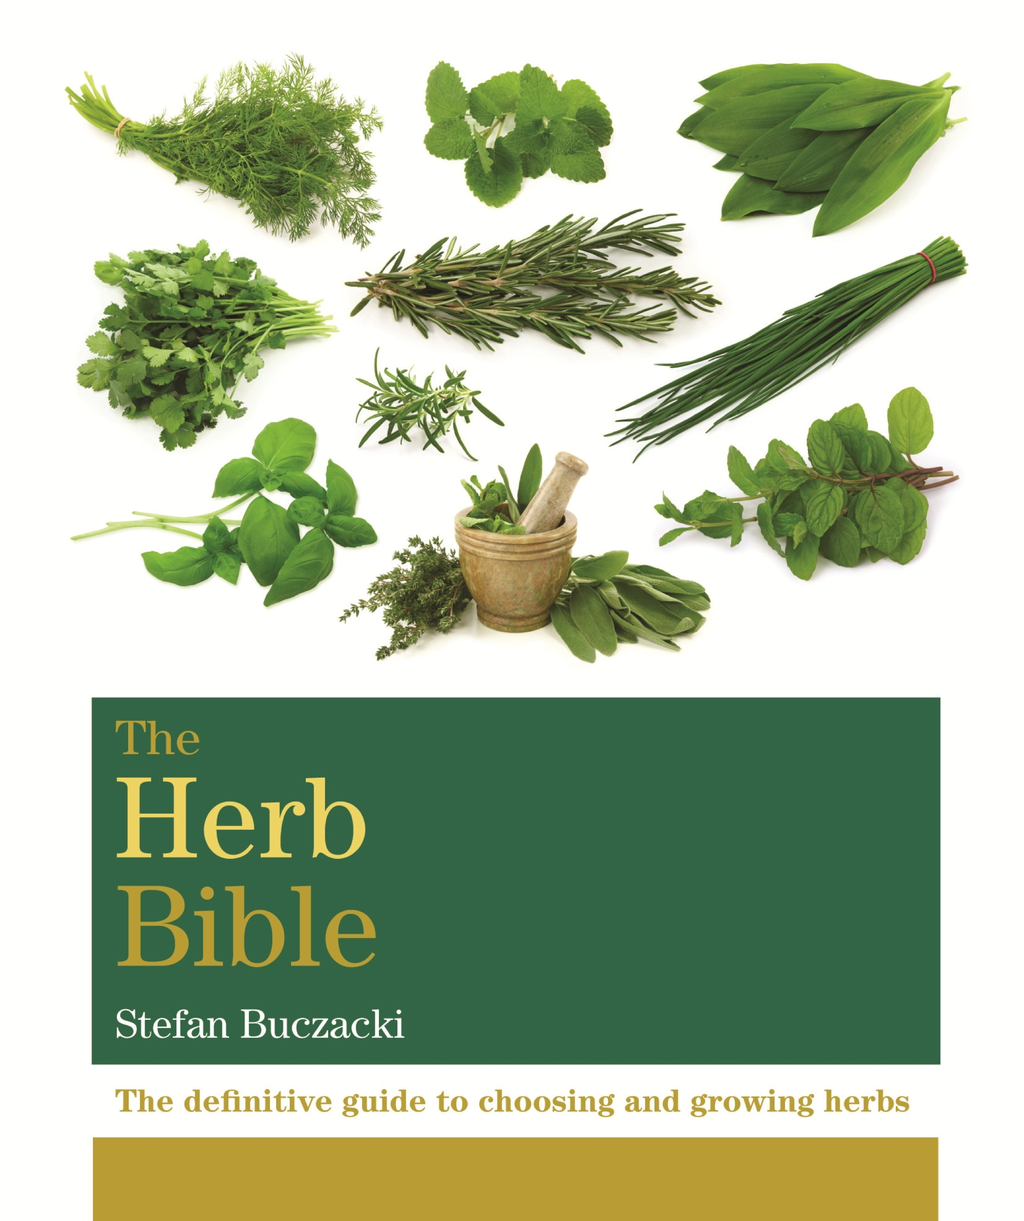 The Herb Bible The definitive guide to choosing and growing herbs